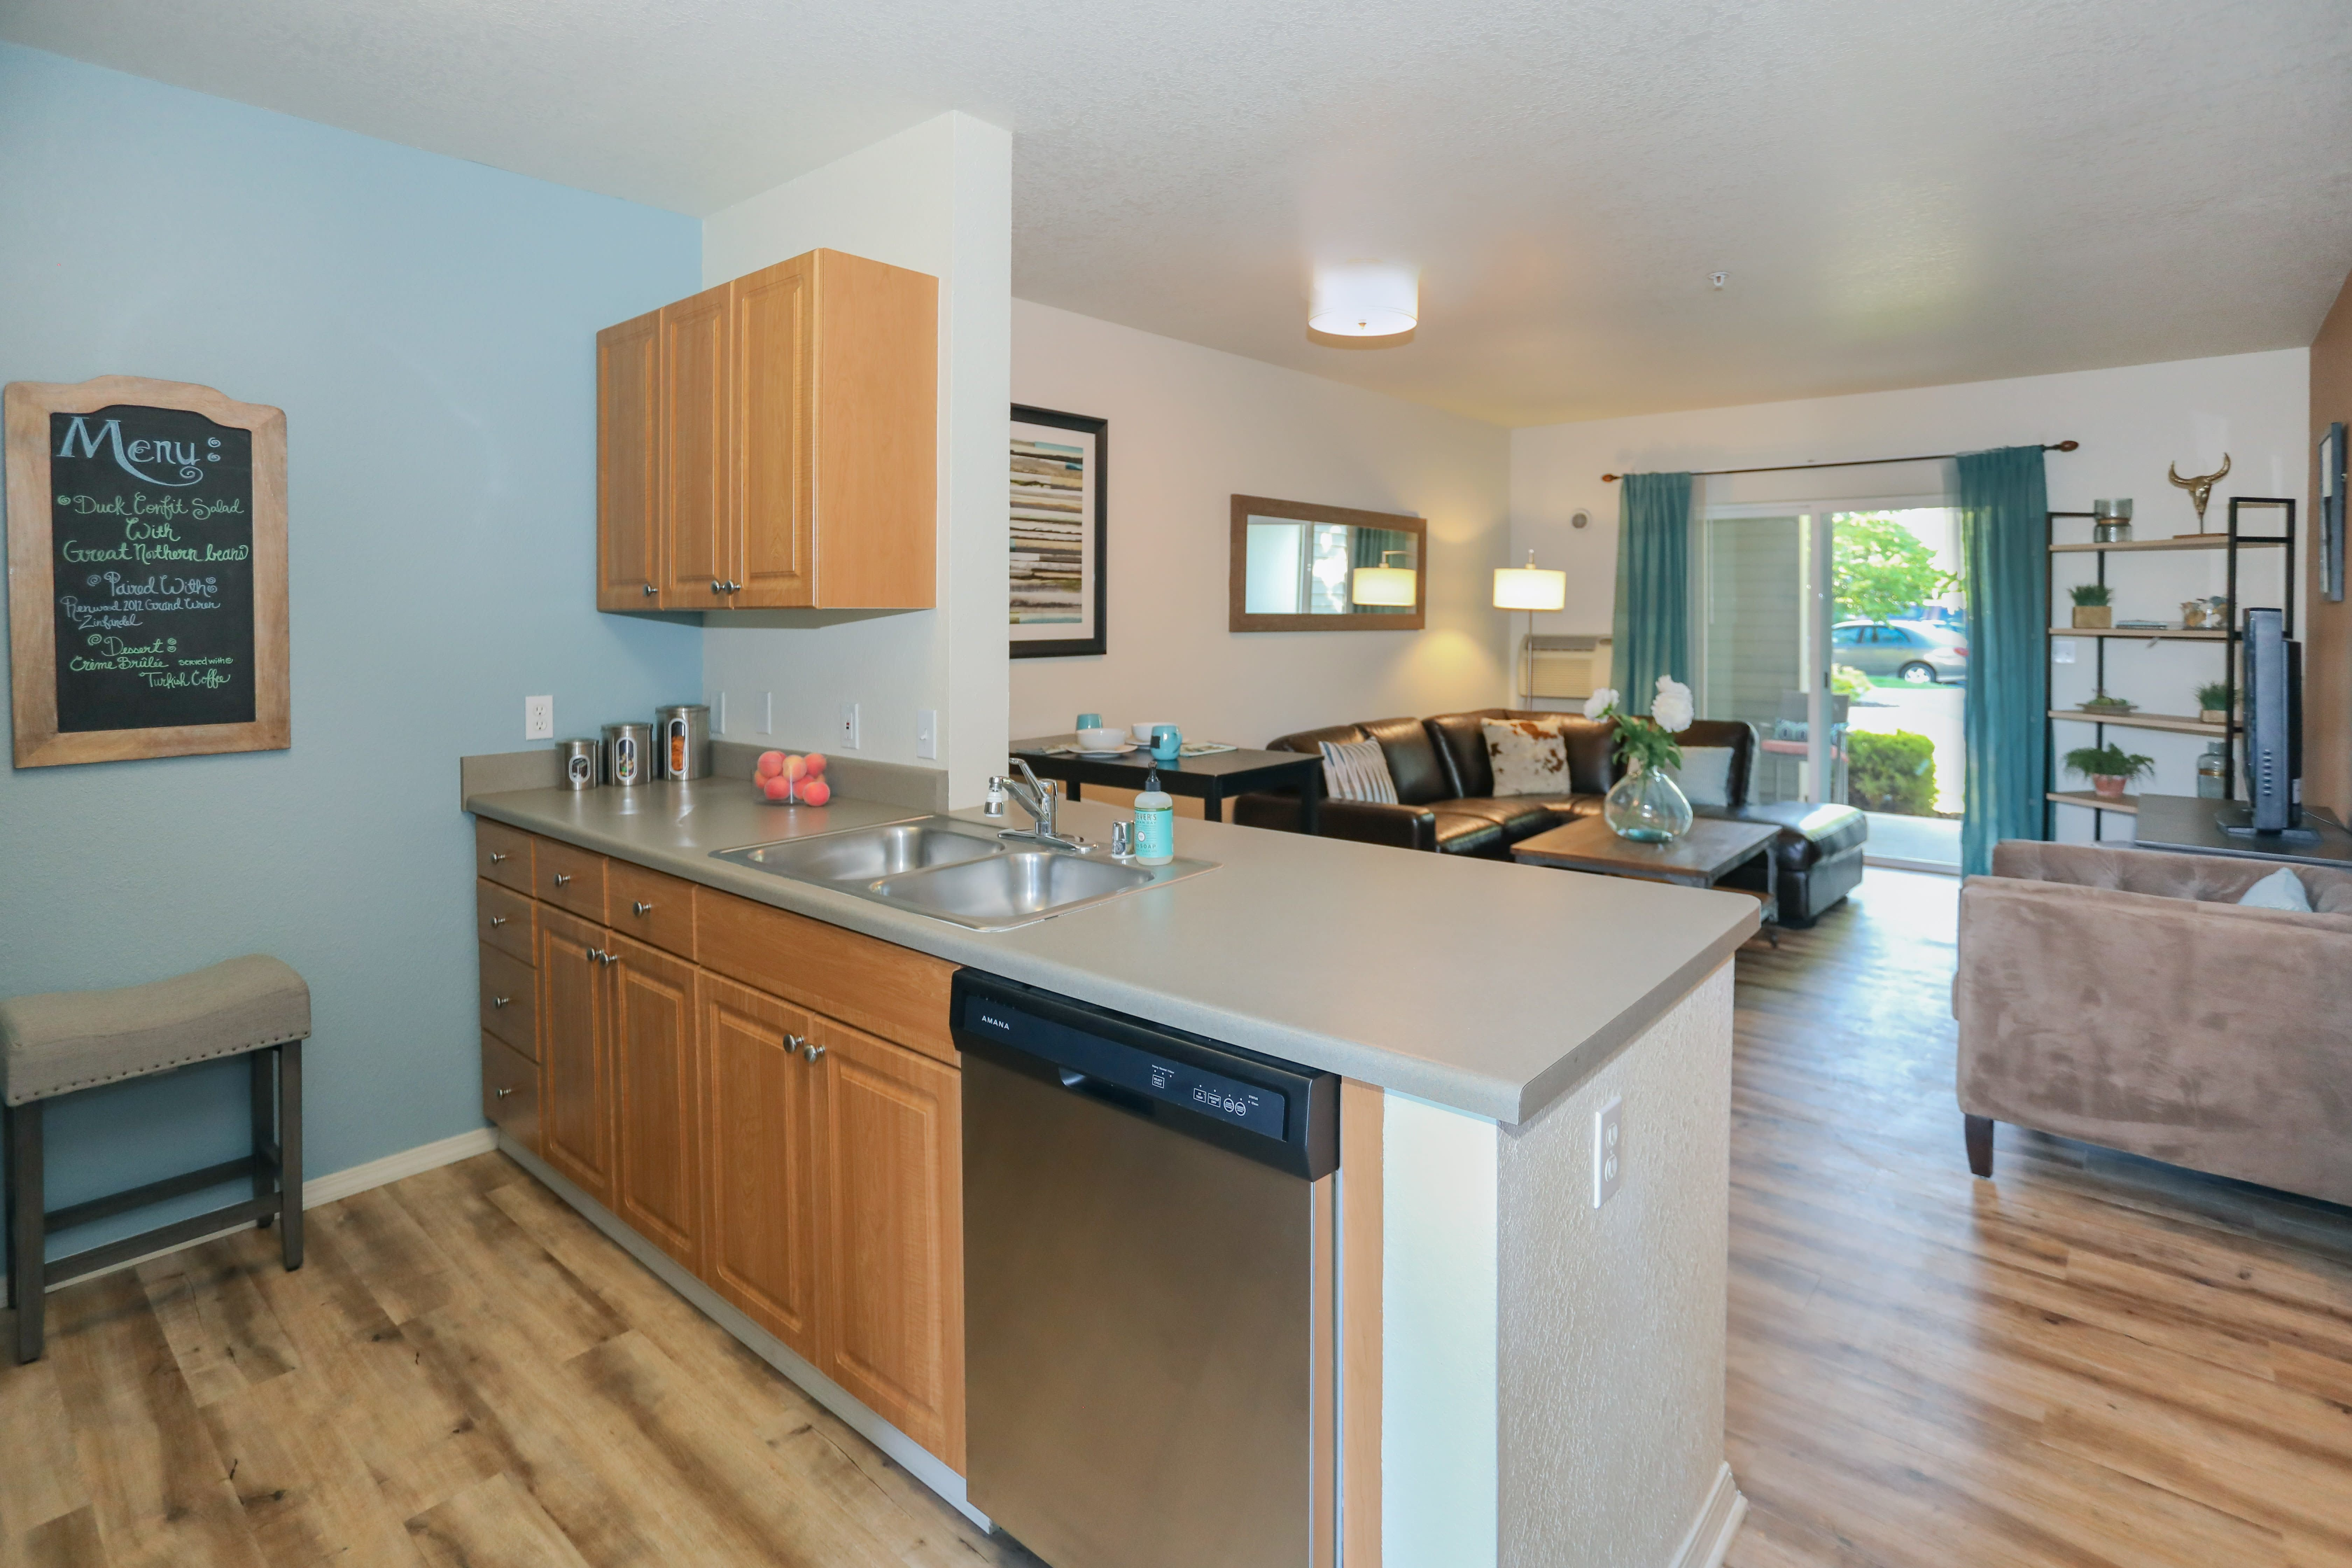 Best Studio 1 2 Bedroom Apartments In Missoula Mt With Pictures